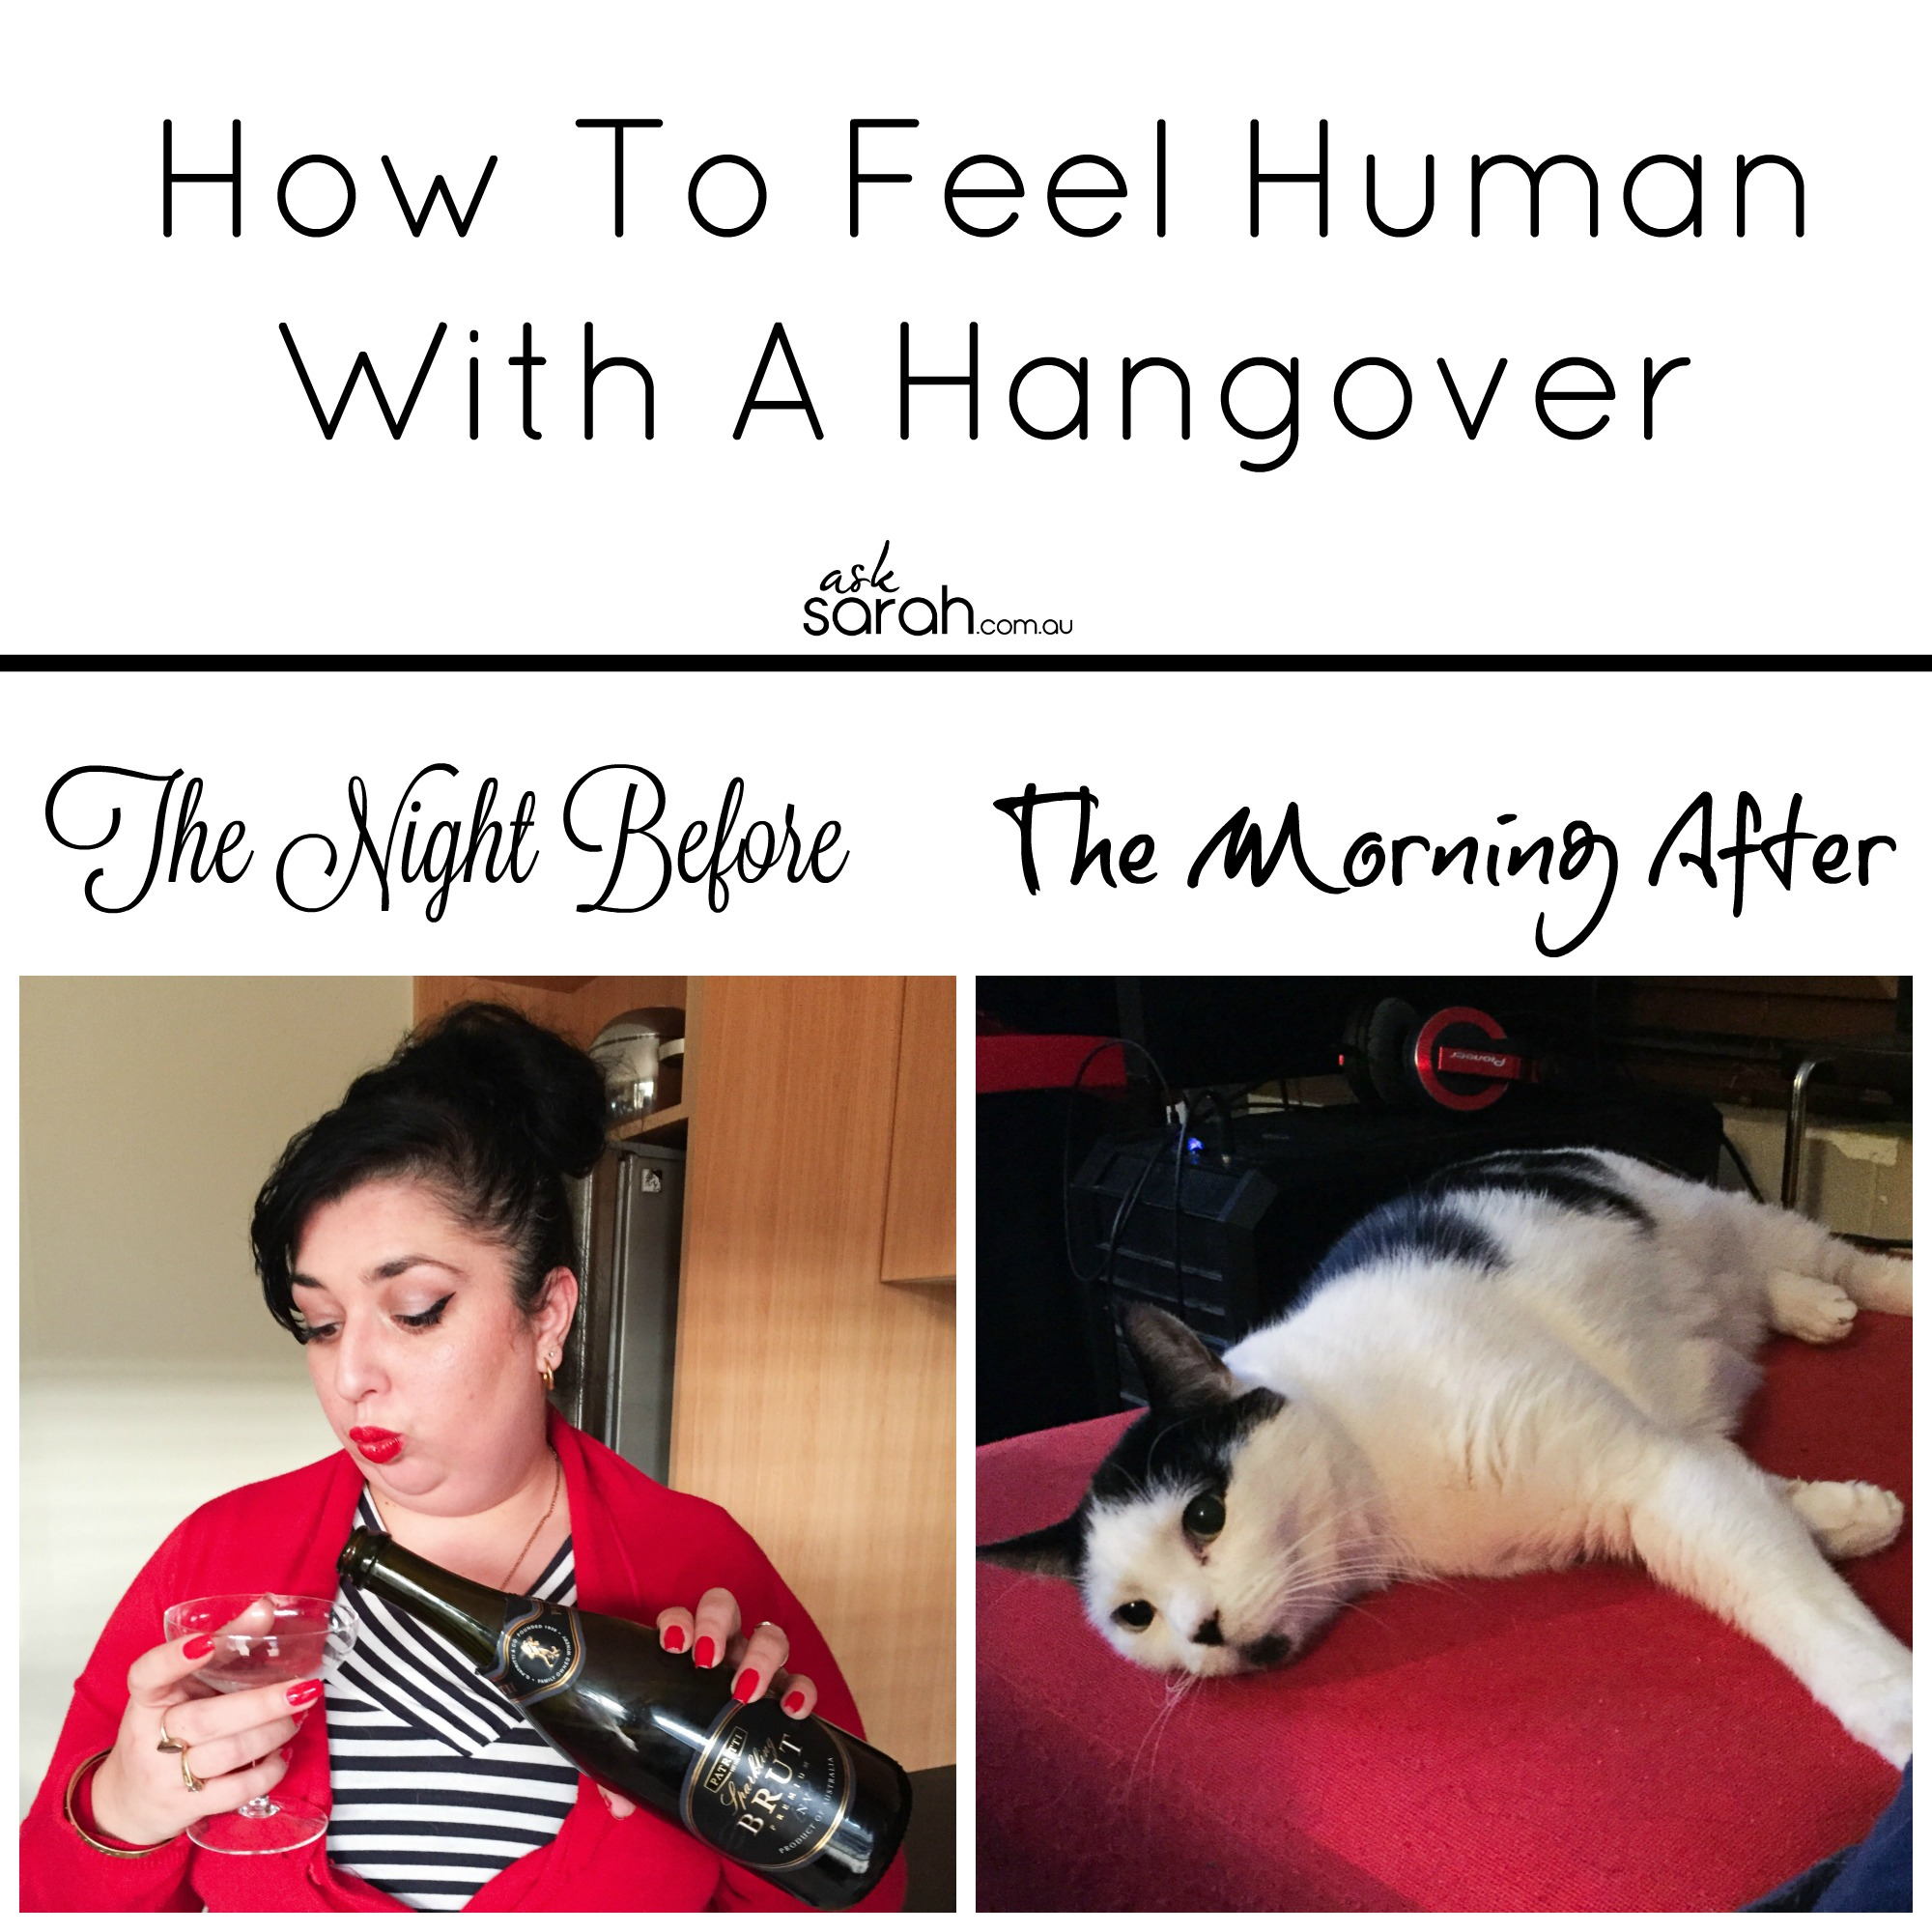 How To Feel Human With A Hangover